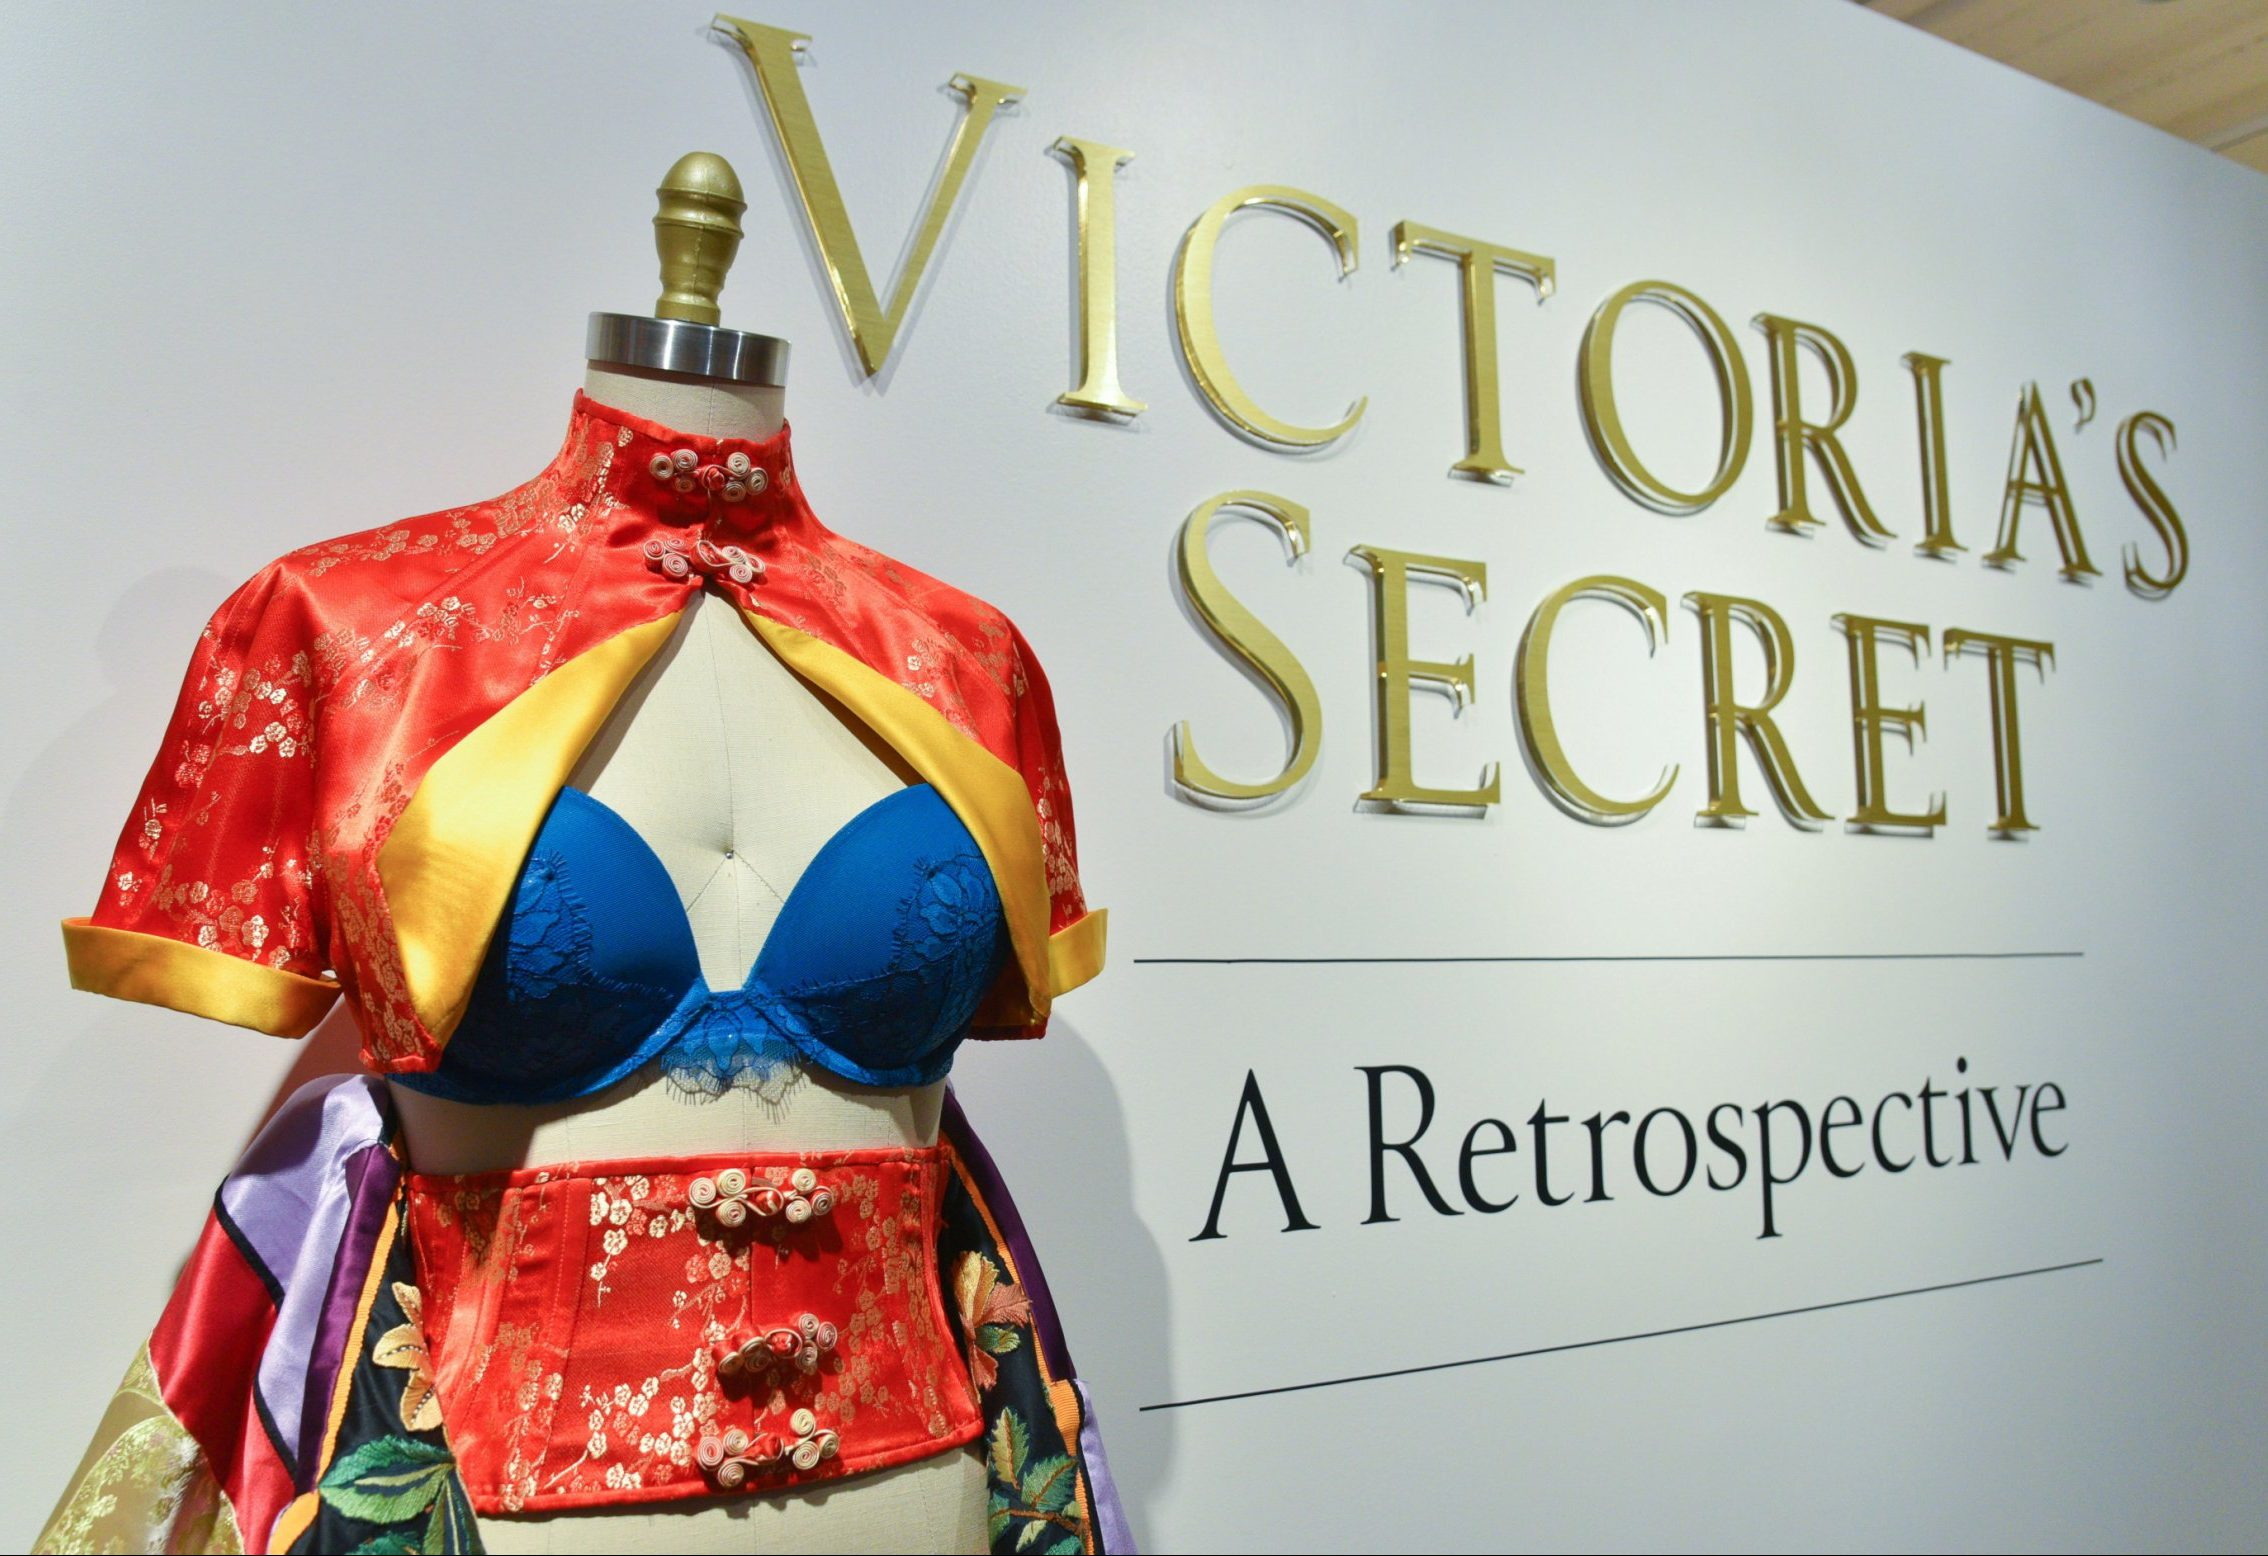 A Victoria's Secret museum has opened in New York